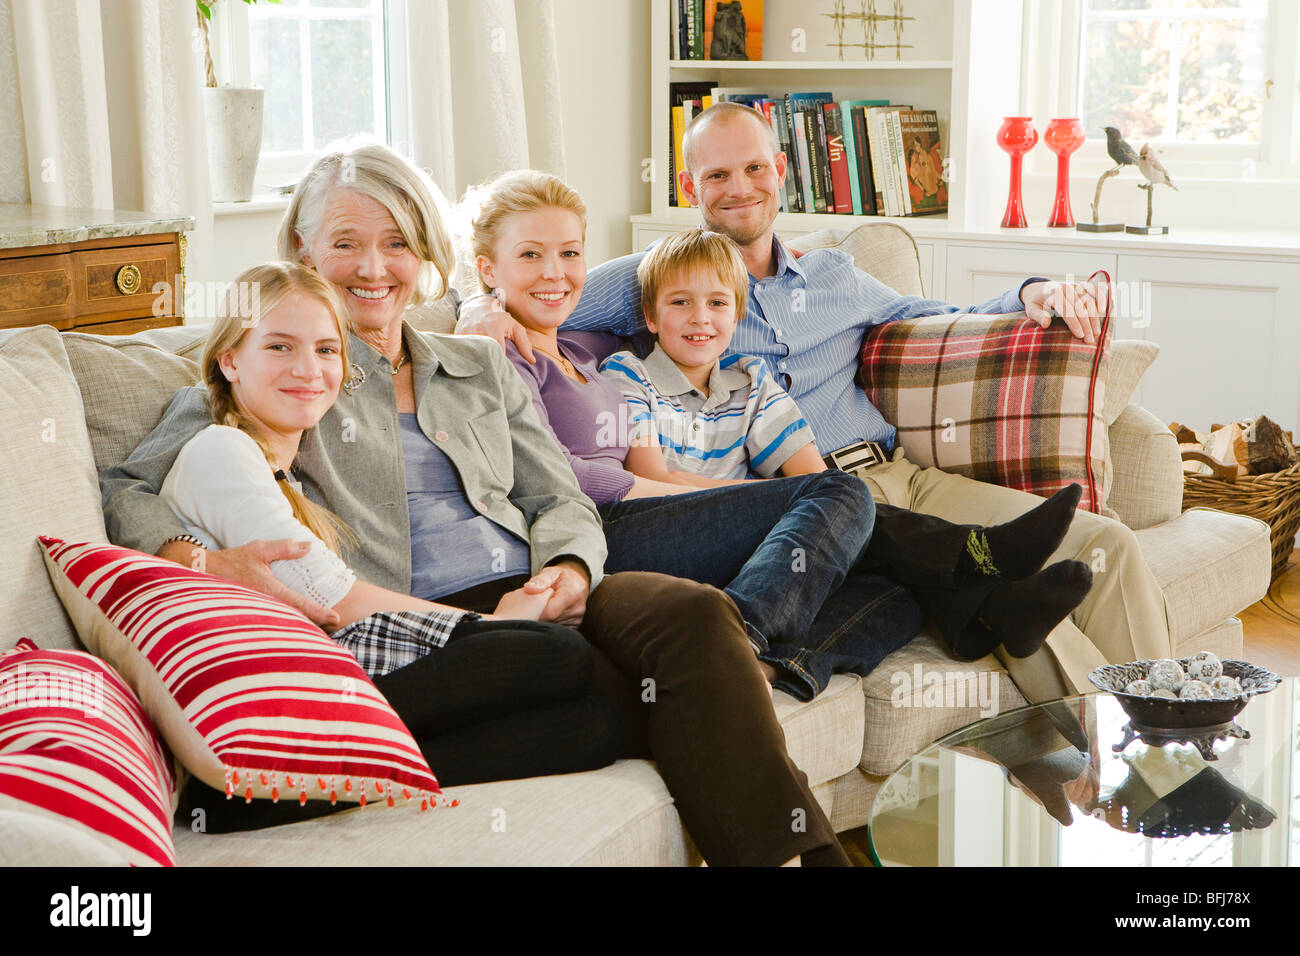 Multi-generation family sitting in a sofa, Sweden. - Stock Image